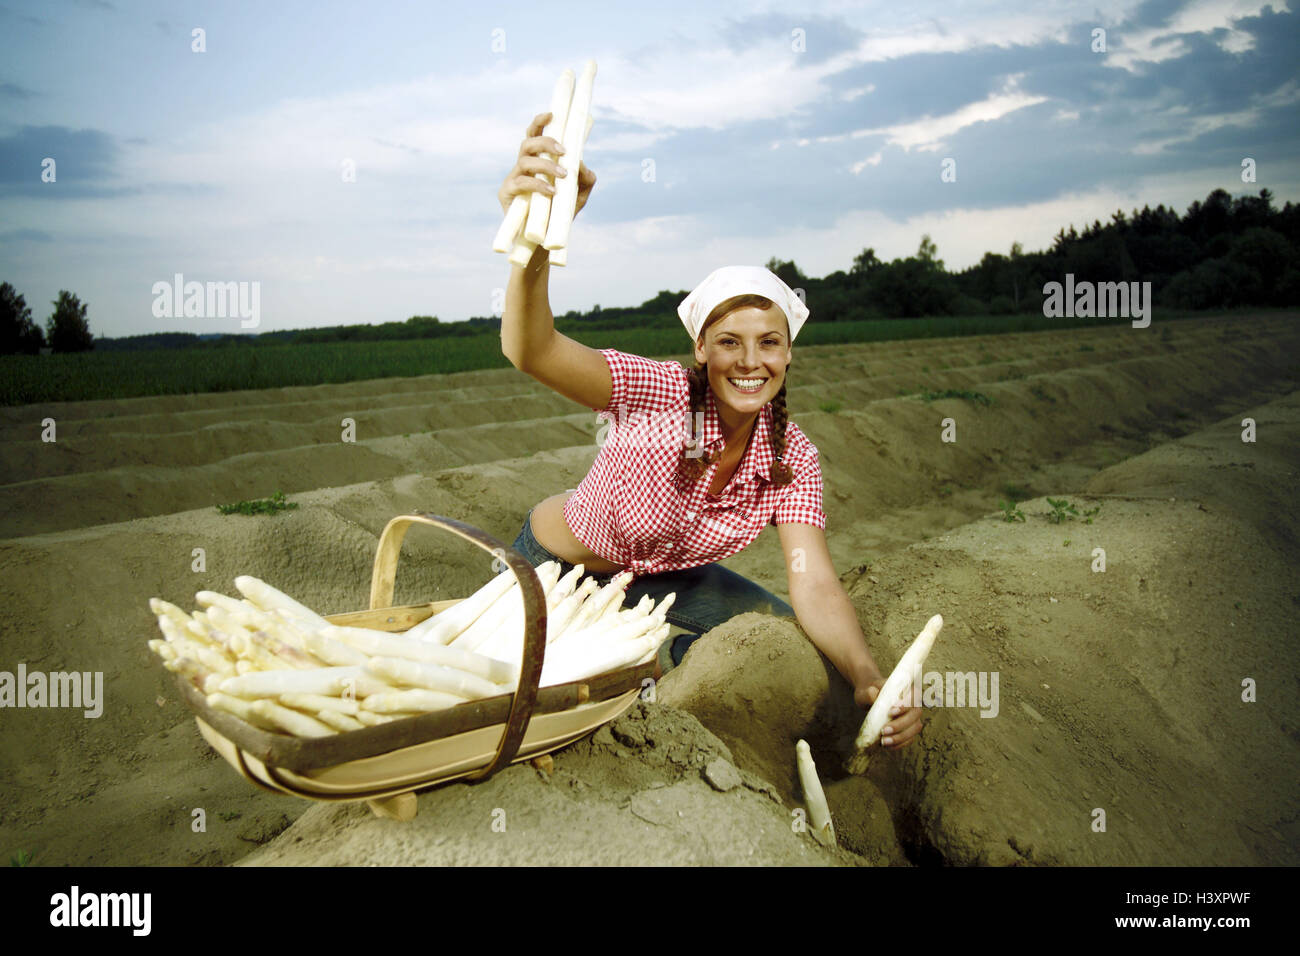 Asparagus field, woman, young, asparagus, harvest field, asparagus cultivation, agriculture, country living, vegetables, Stock Photo